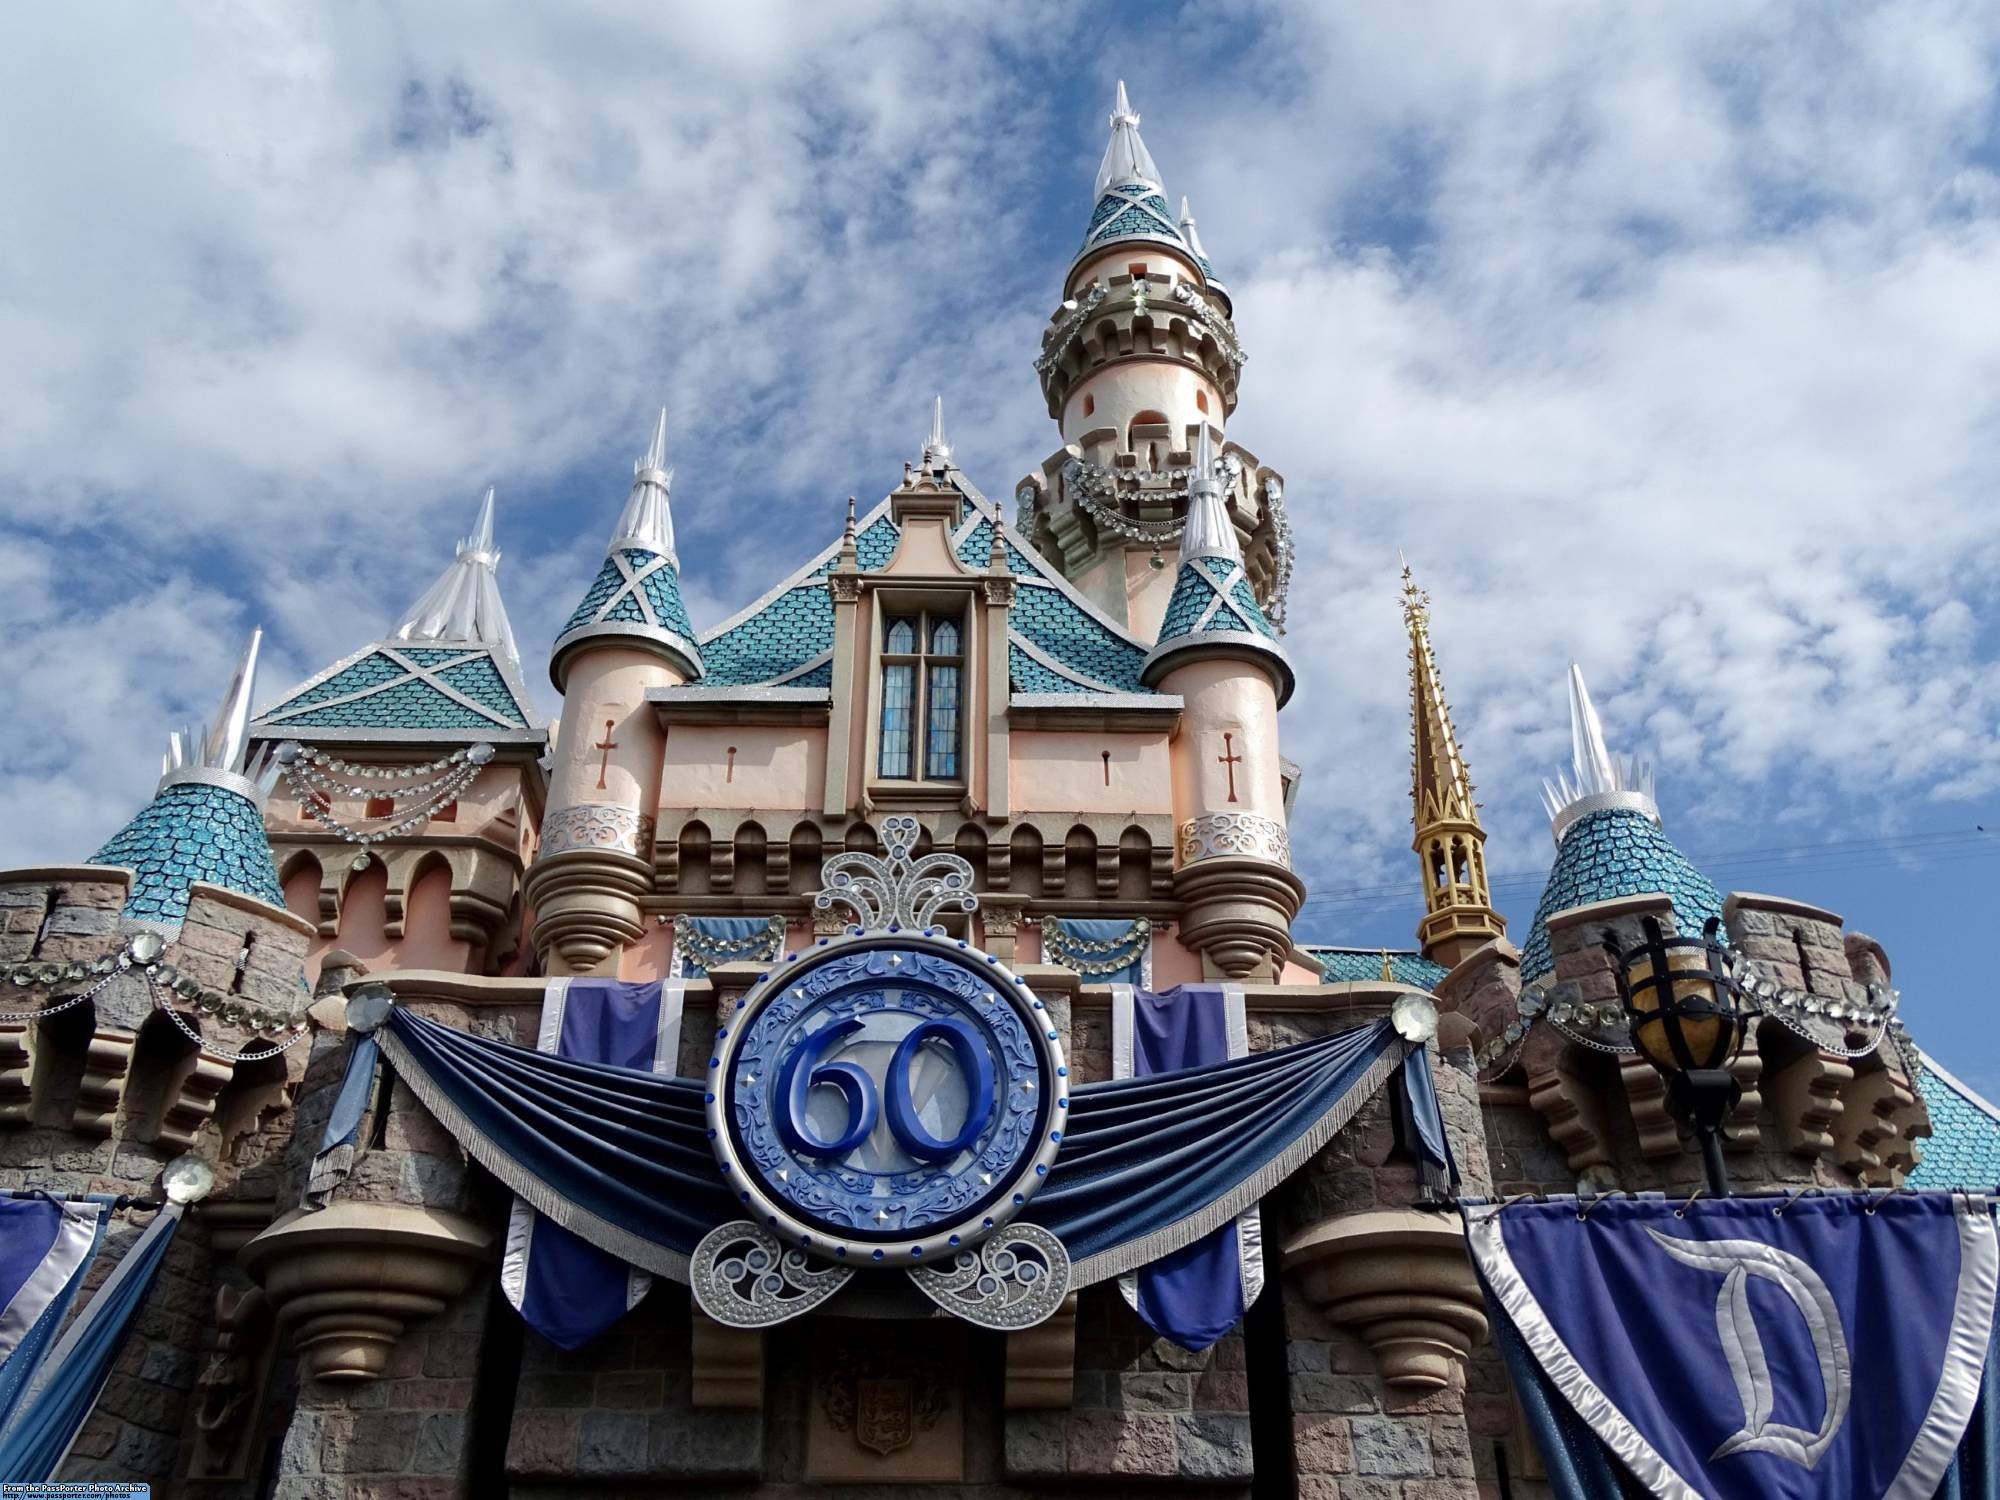 Learn how to stay cool and beat the heat at Disneyland |PassPorter.com